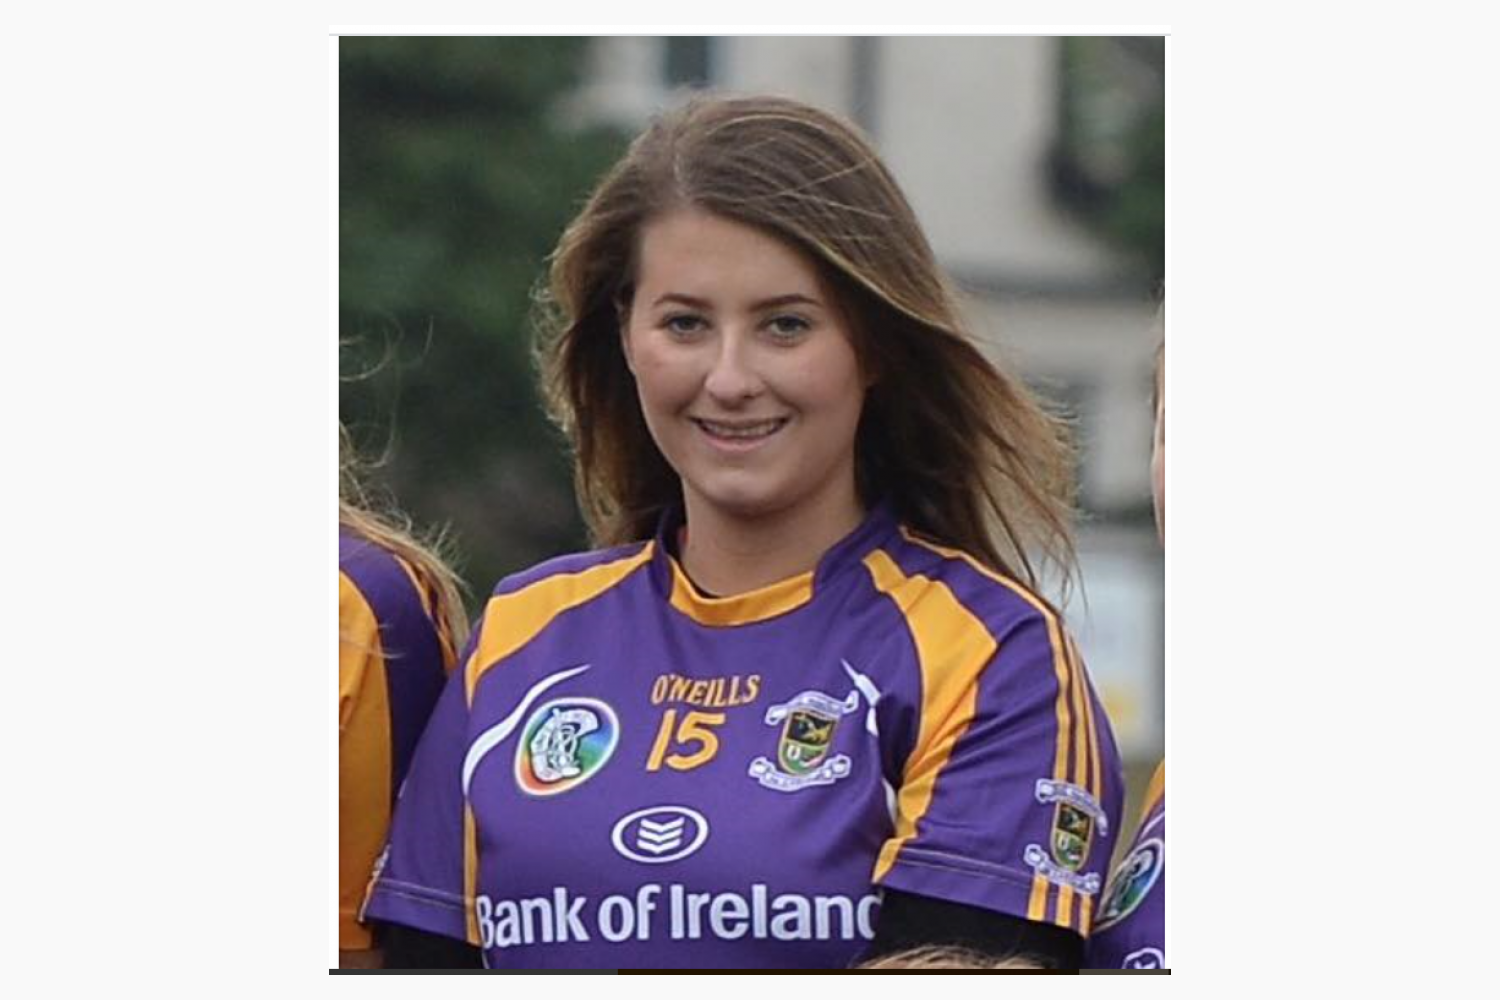 Aisling Meager RIP